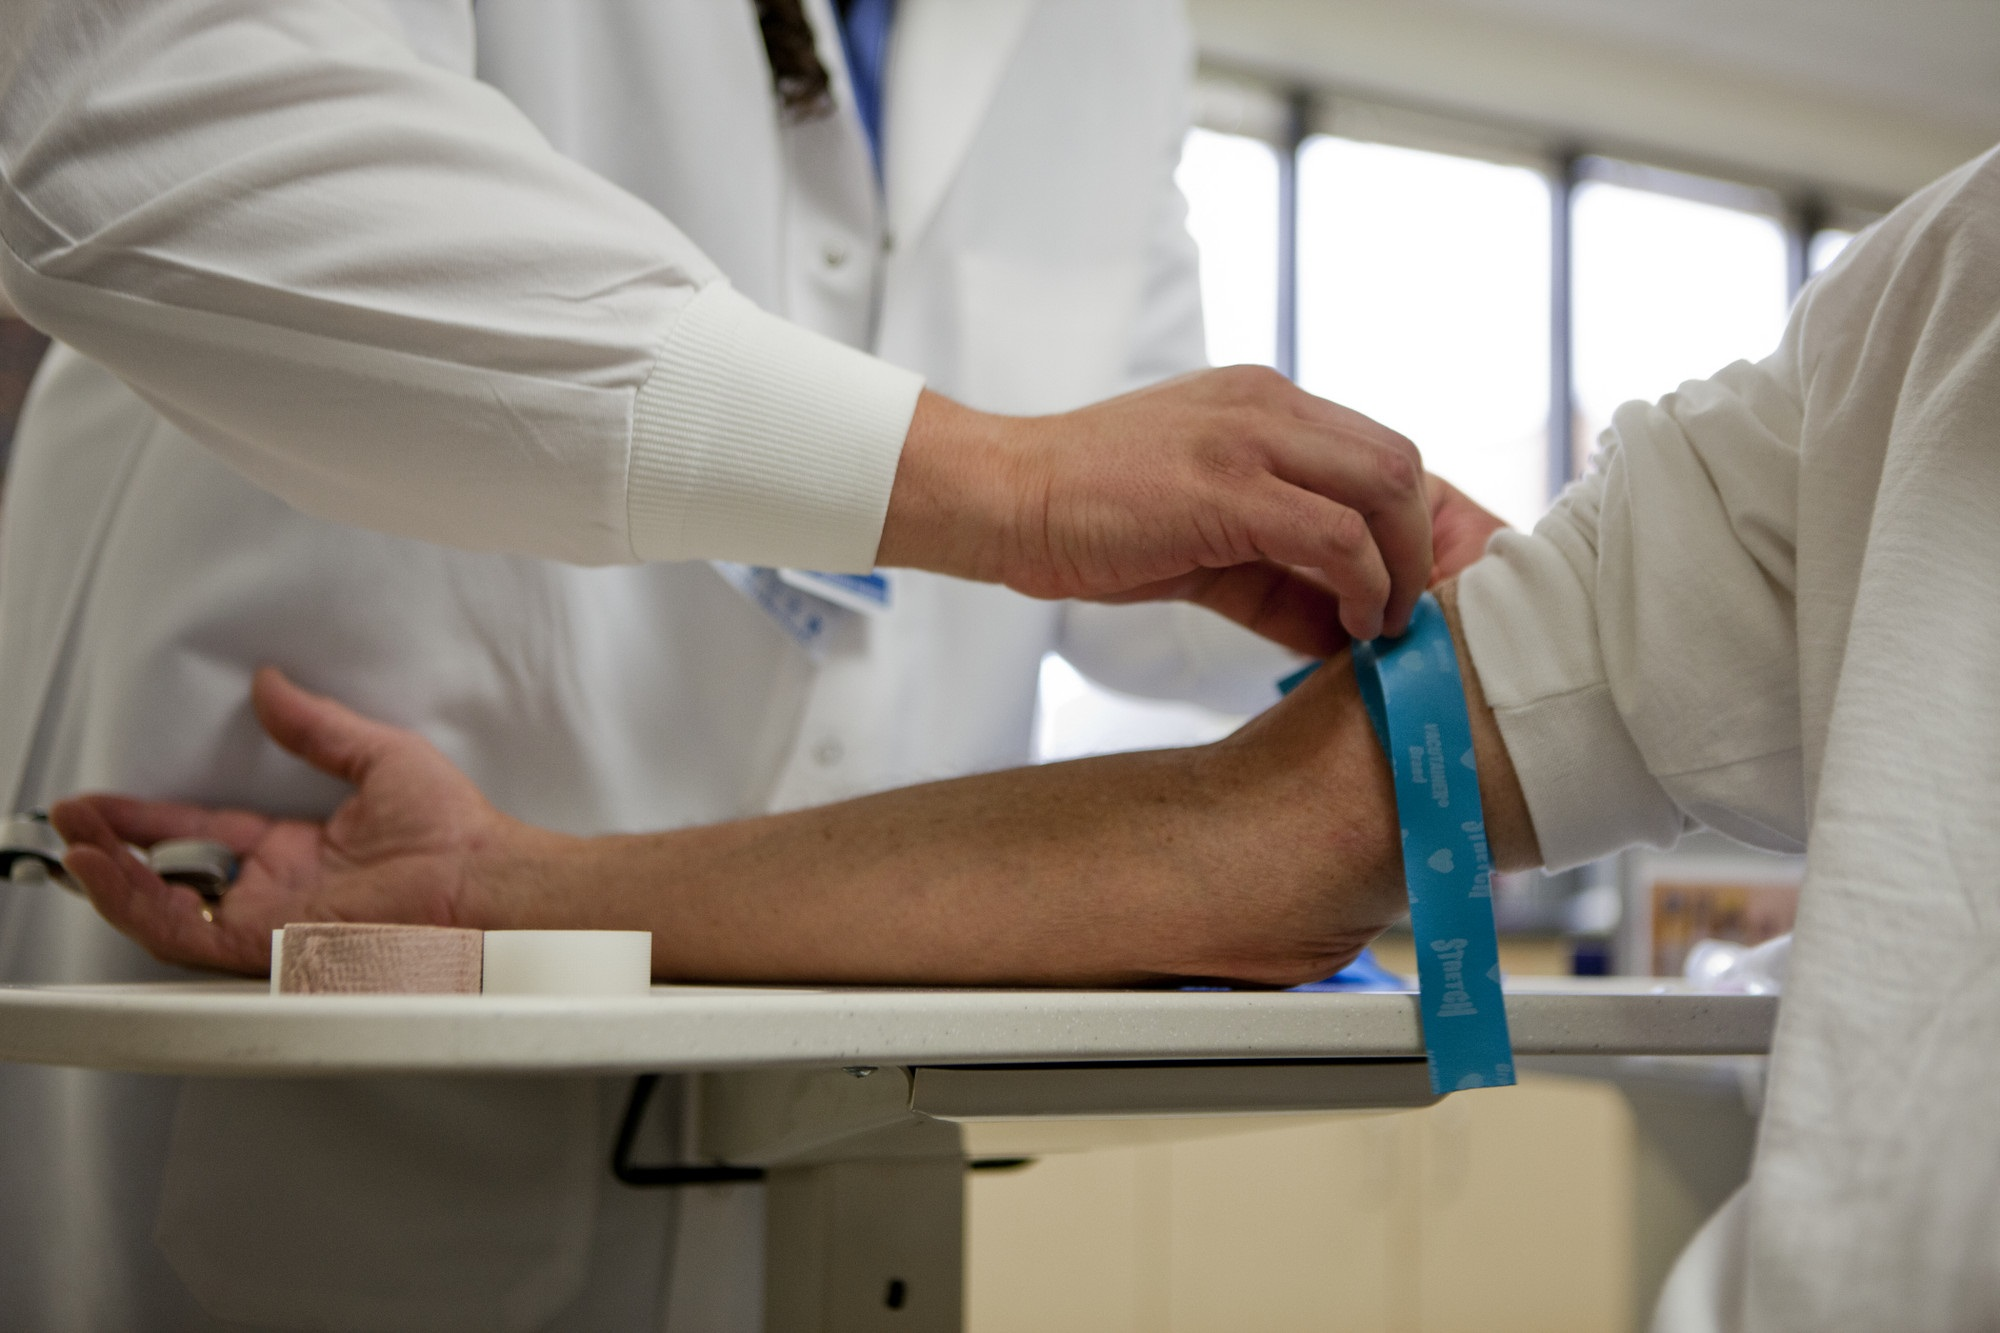 A provider preparing a patient's arm for a blood draw